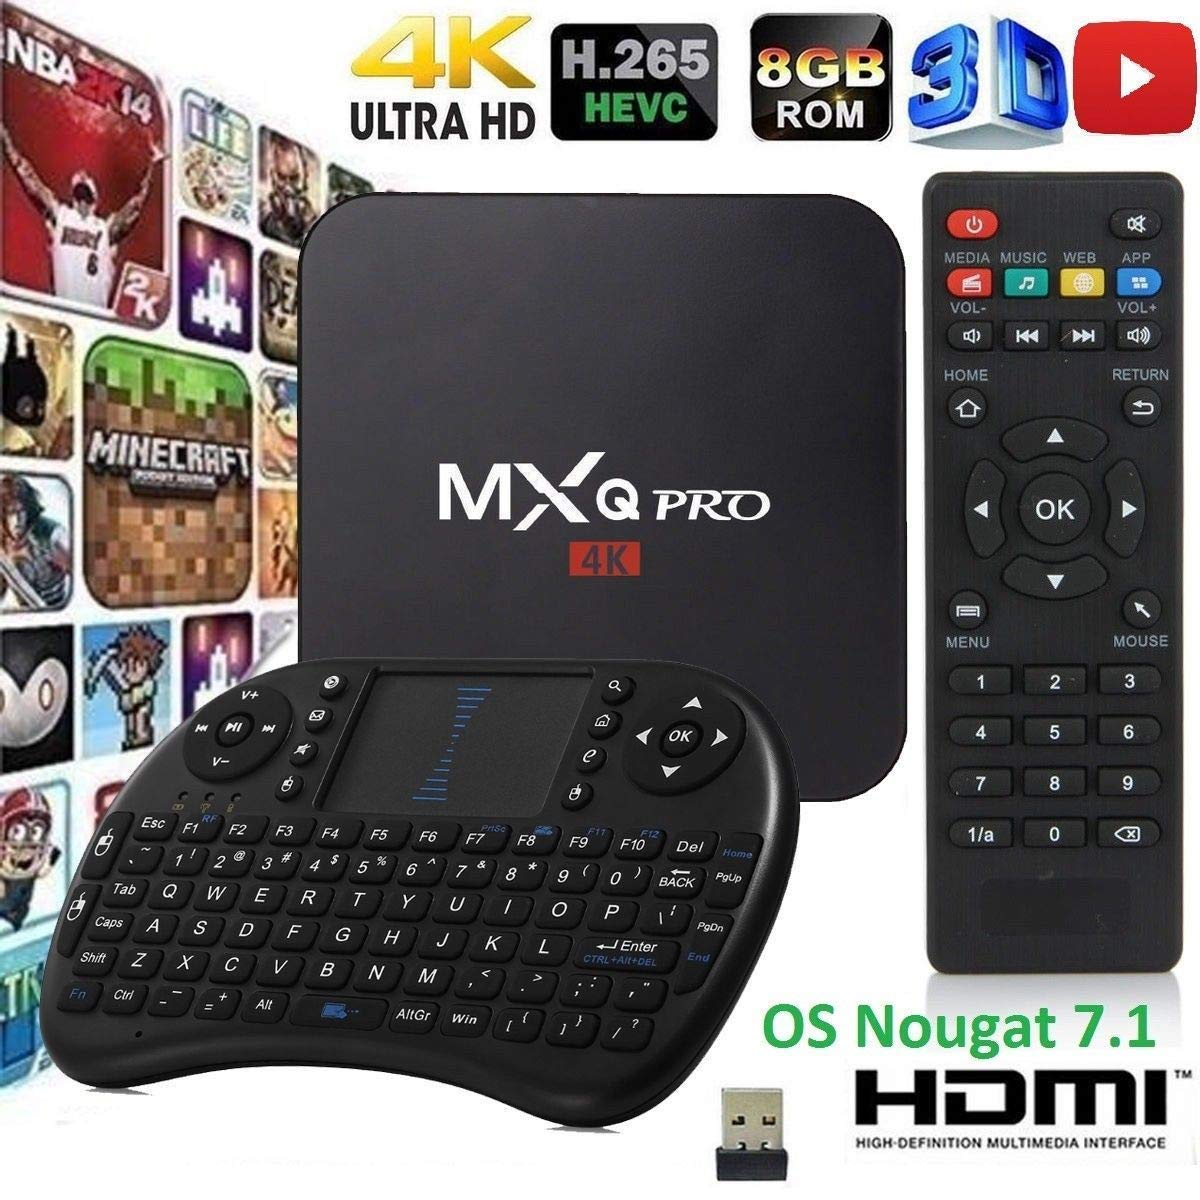 MXQ Pro HDTV Box Full HD 1080P up to 4K Android 7.1 64 Bit Amlogic S905W Quad Core 1G/8G HDMI WiFi Internet Browser/Games/Apps Google Play with Mini Wireless Keyboard